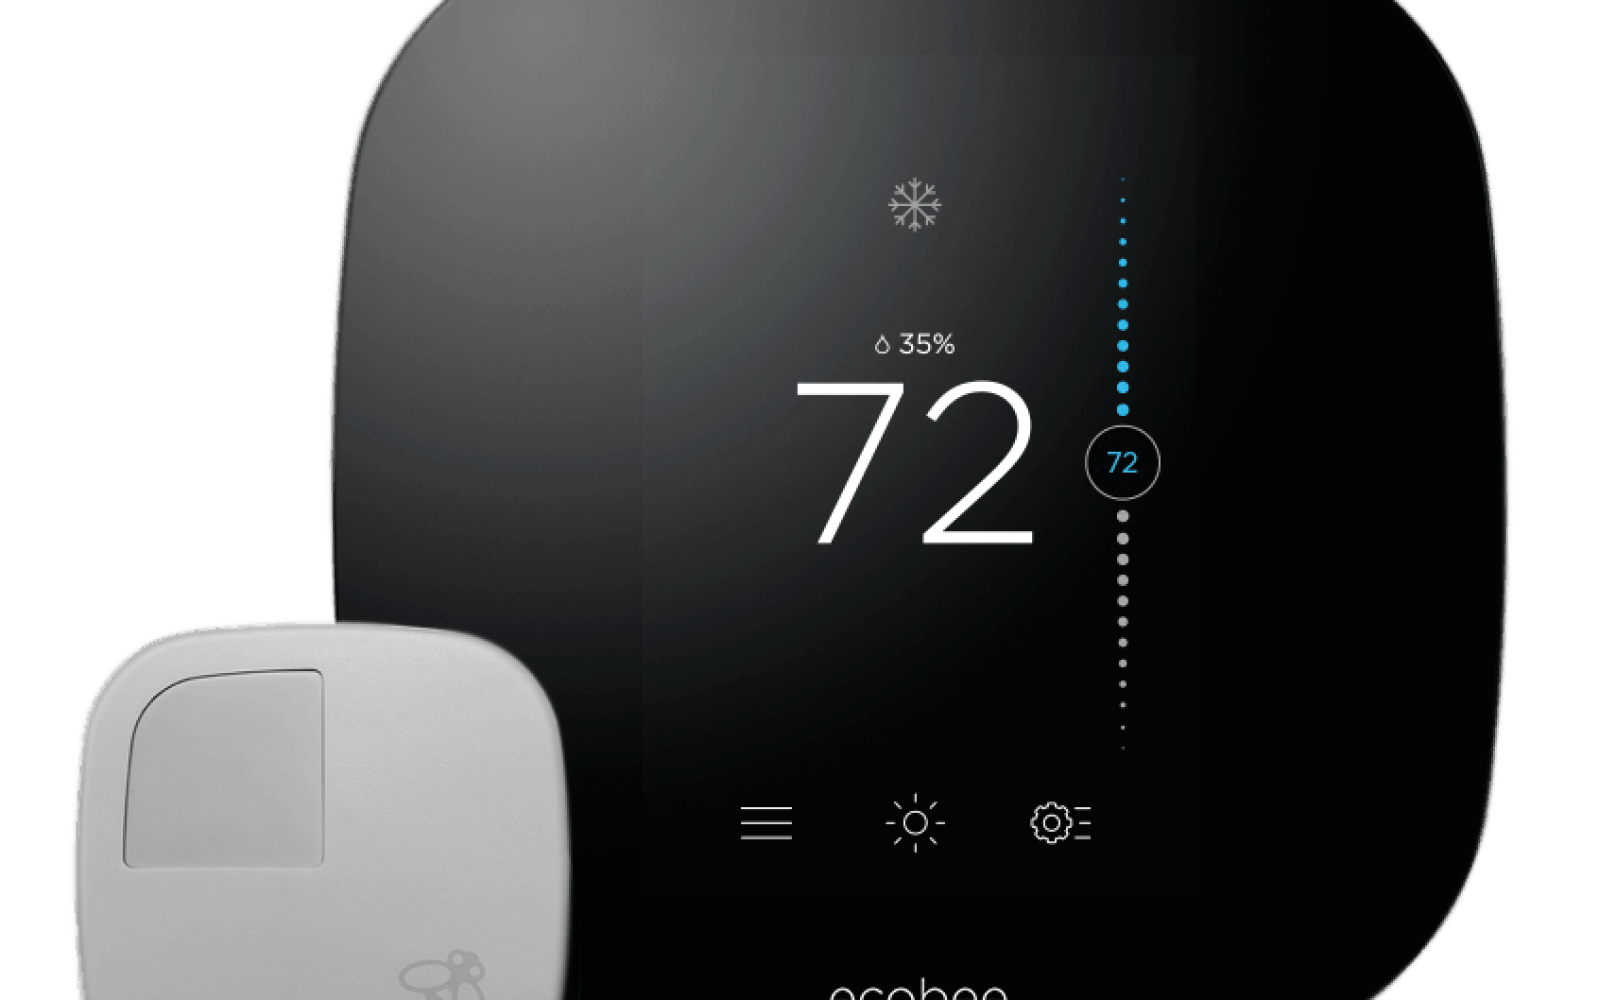 ecobee's new smart thermostat and remote sensors offer complete home coverage